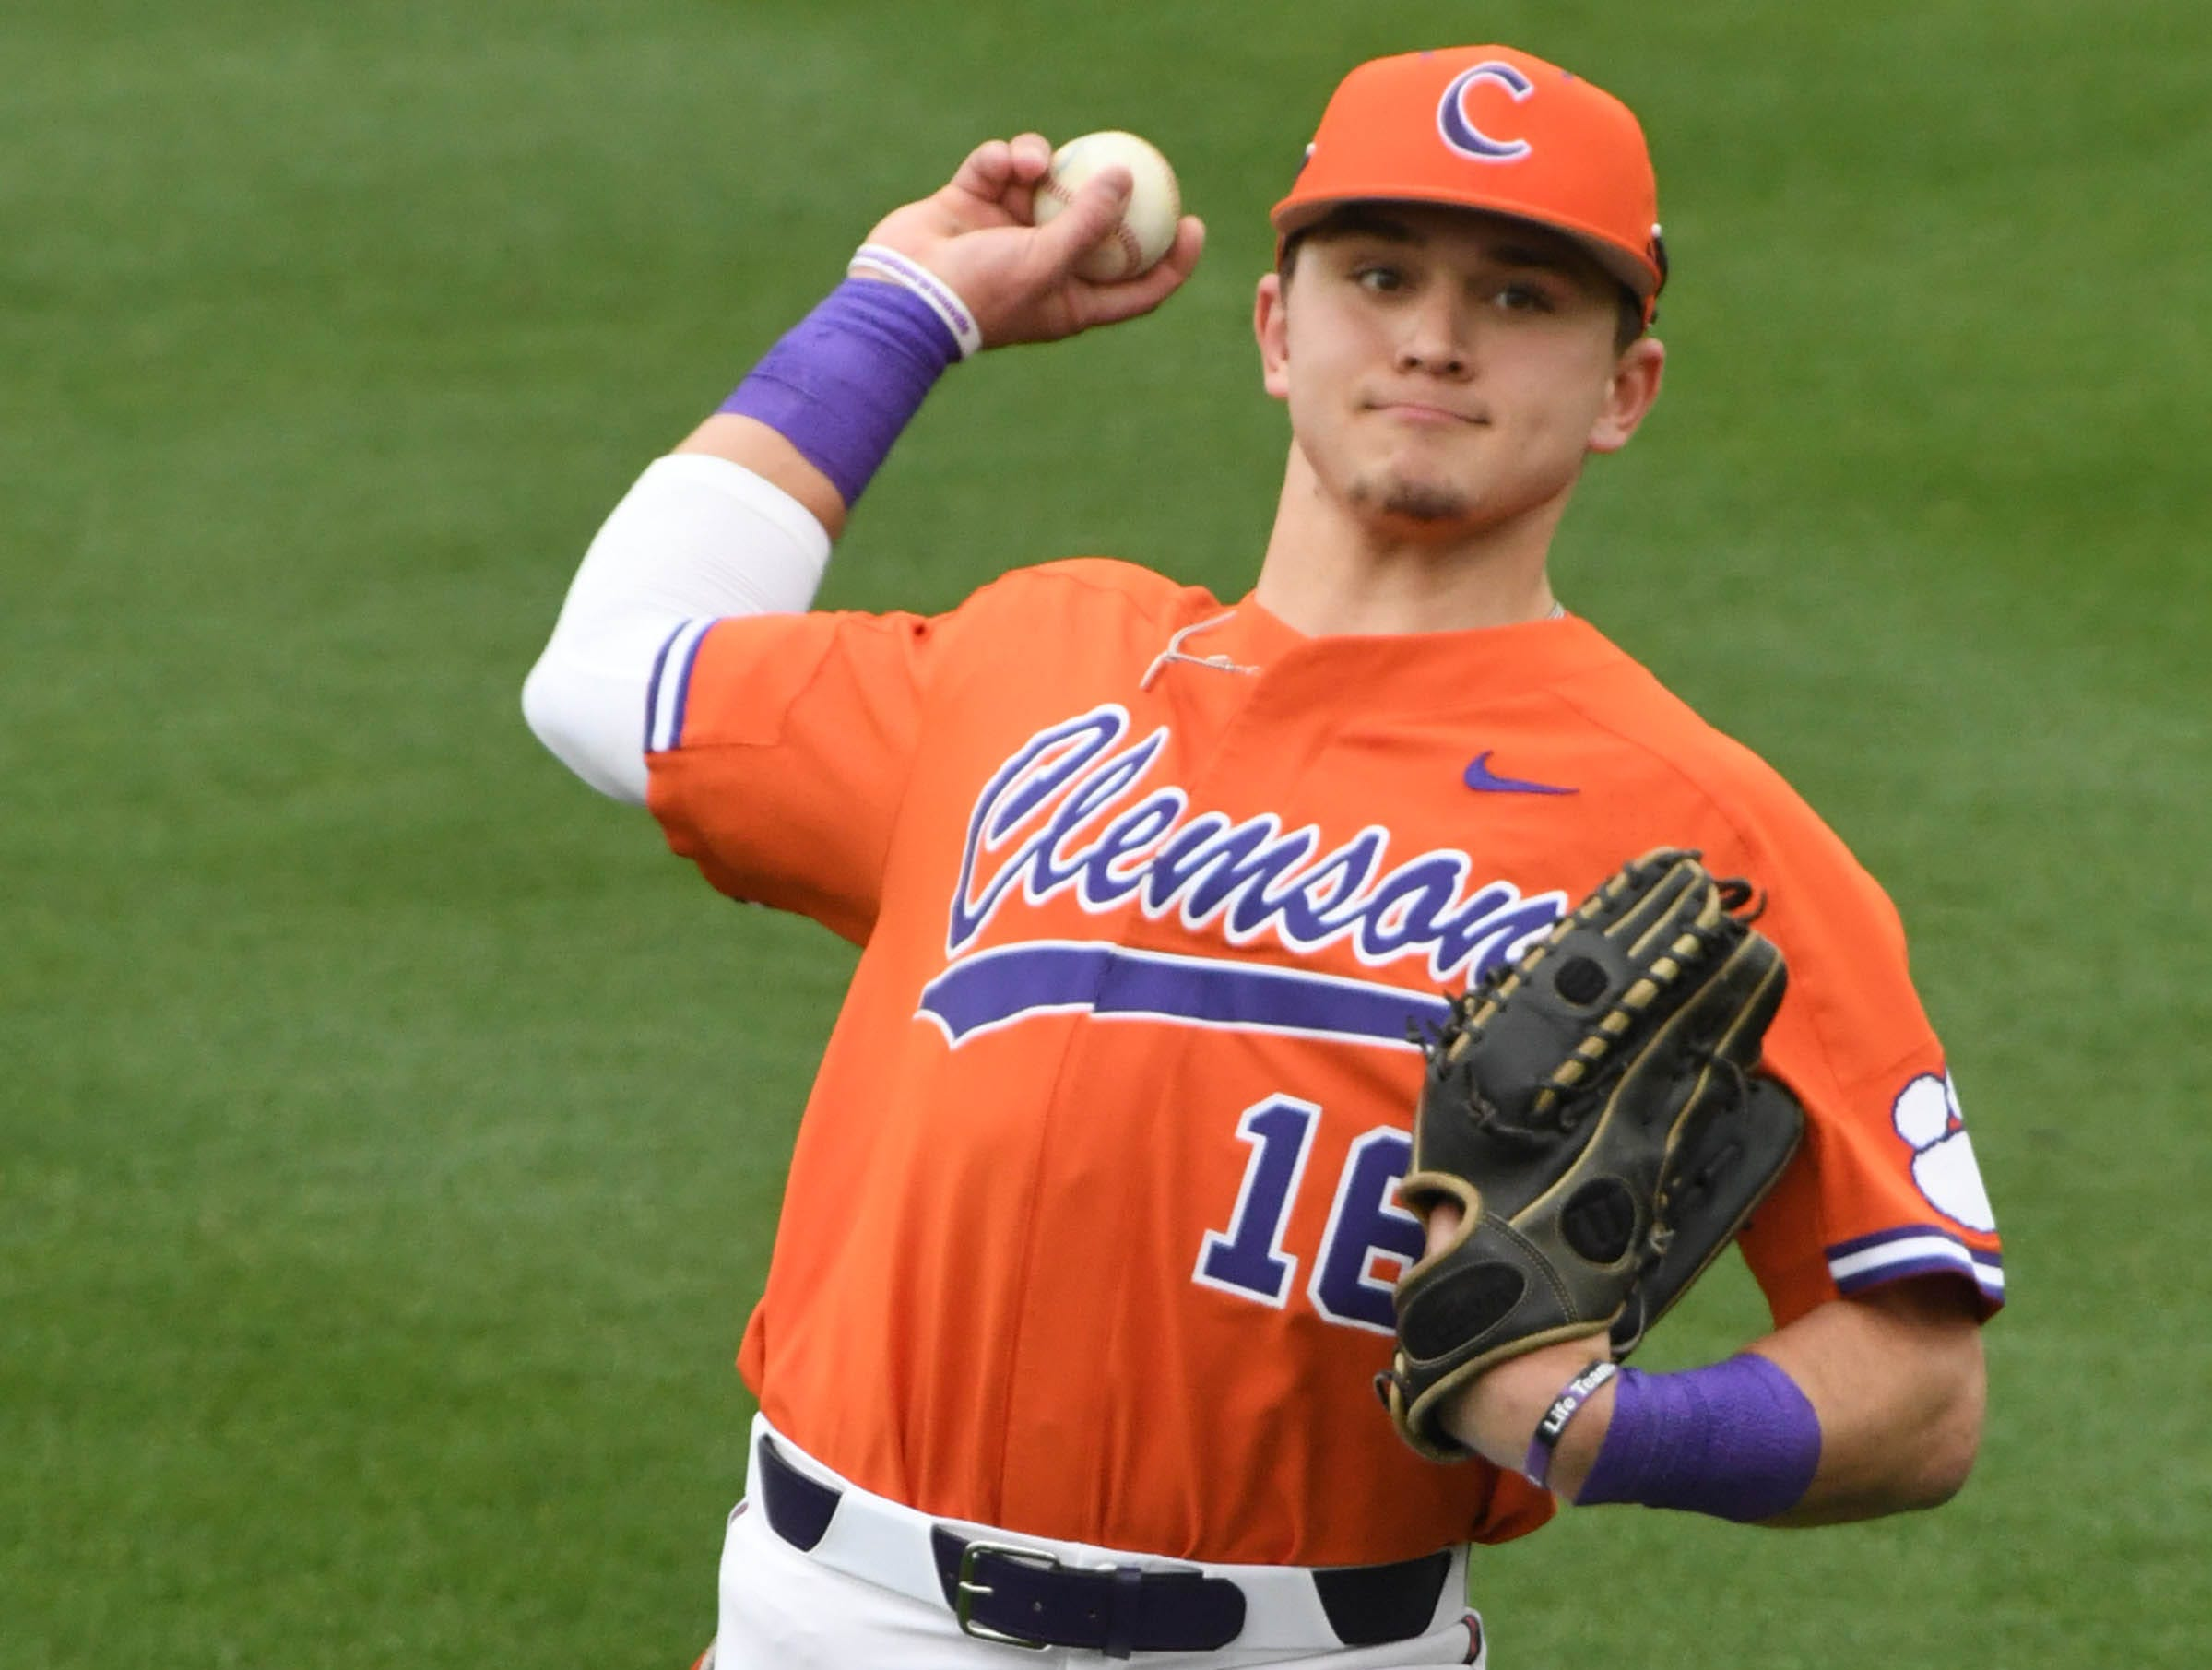 Clemson sophomore Bo Majkowski(16) warms up before the game with South Alabama at Doug Kingsmore Stadium in Clemson Friday, February 15, 2019.